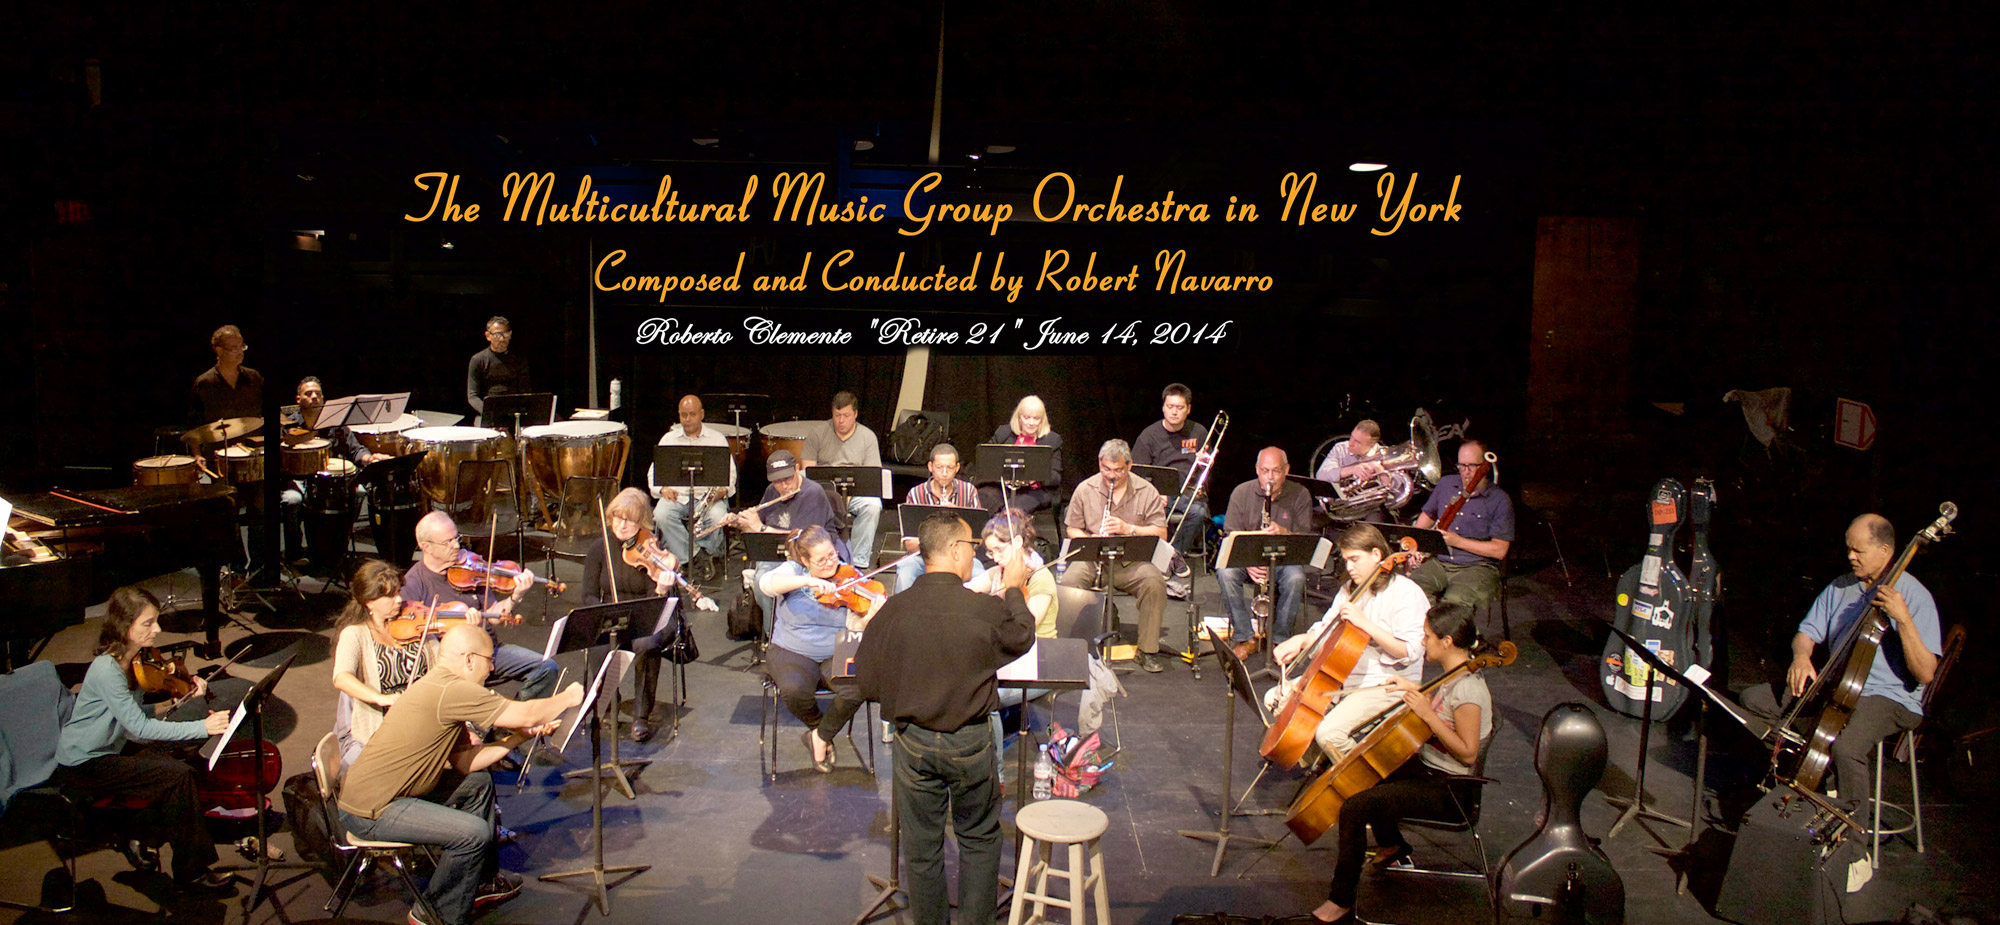 Multicultural Music Group Orchestra in New York